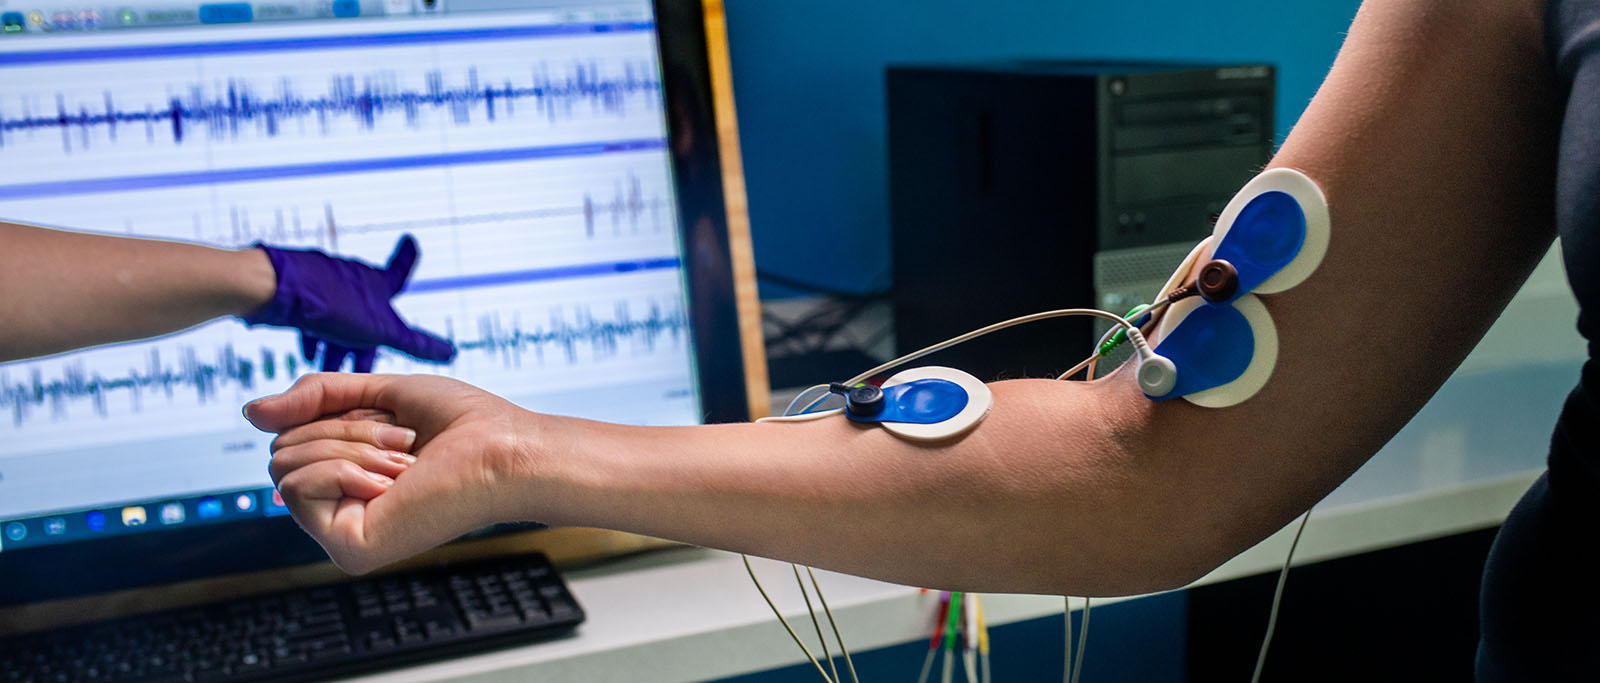 Health Performance machine attached to an athlete arm.